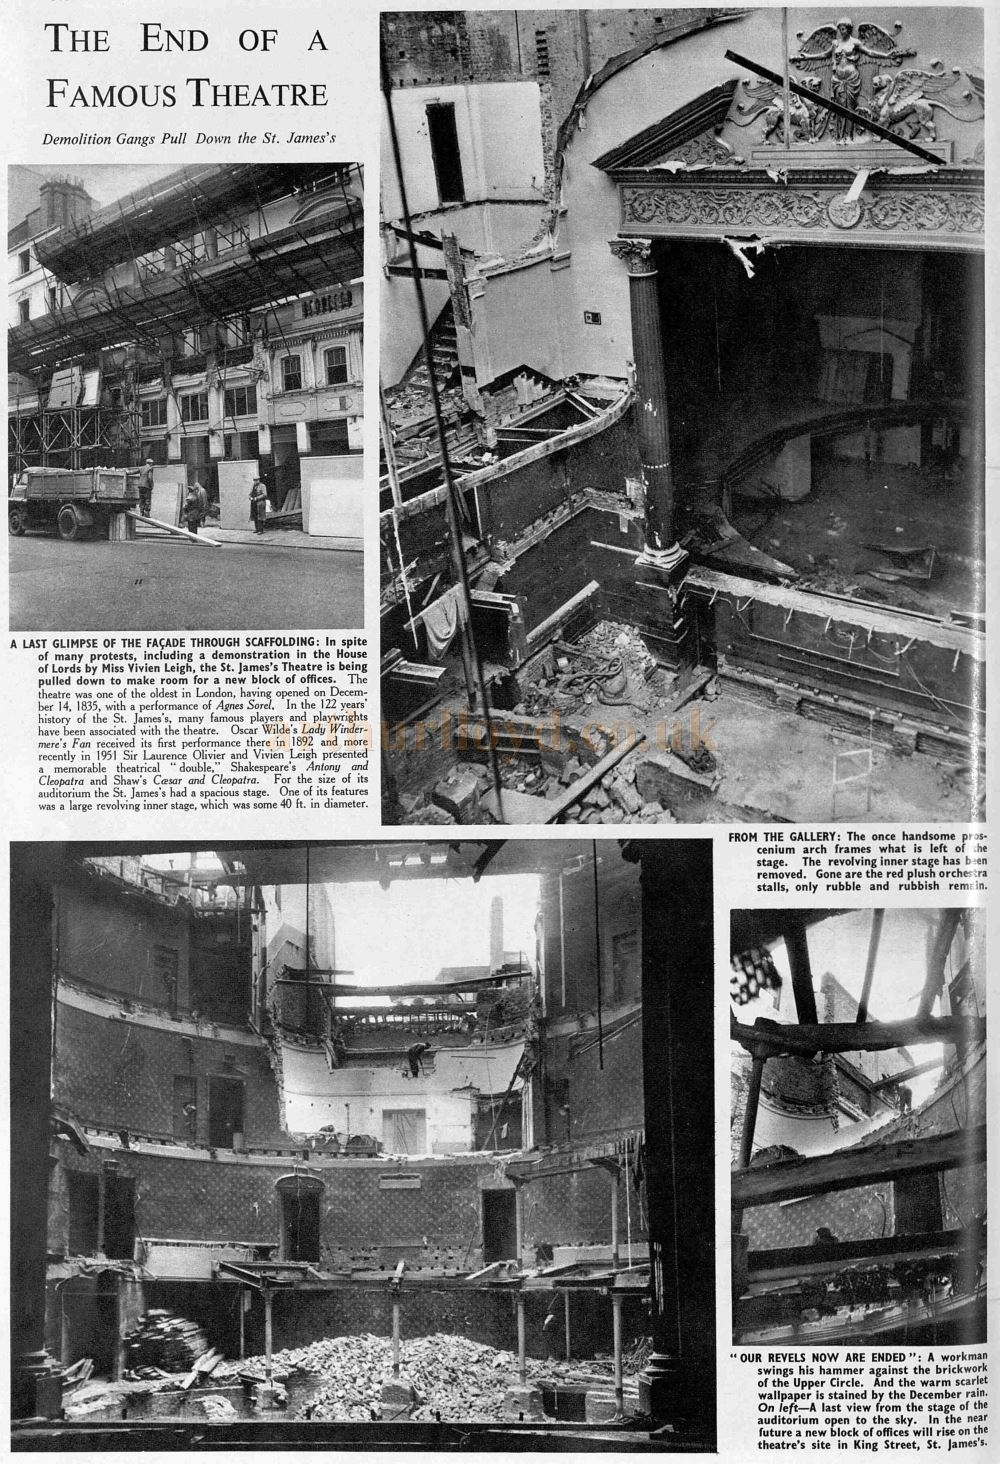 The Demolition of the St. James's Theatre in 1957 - From The Sphere, December 28th 1957.